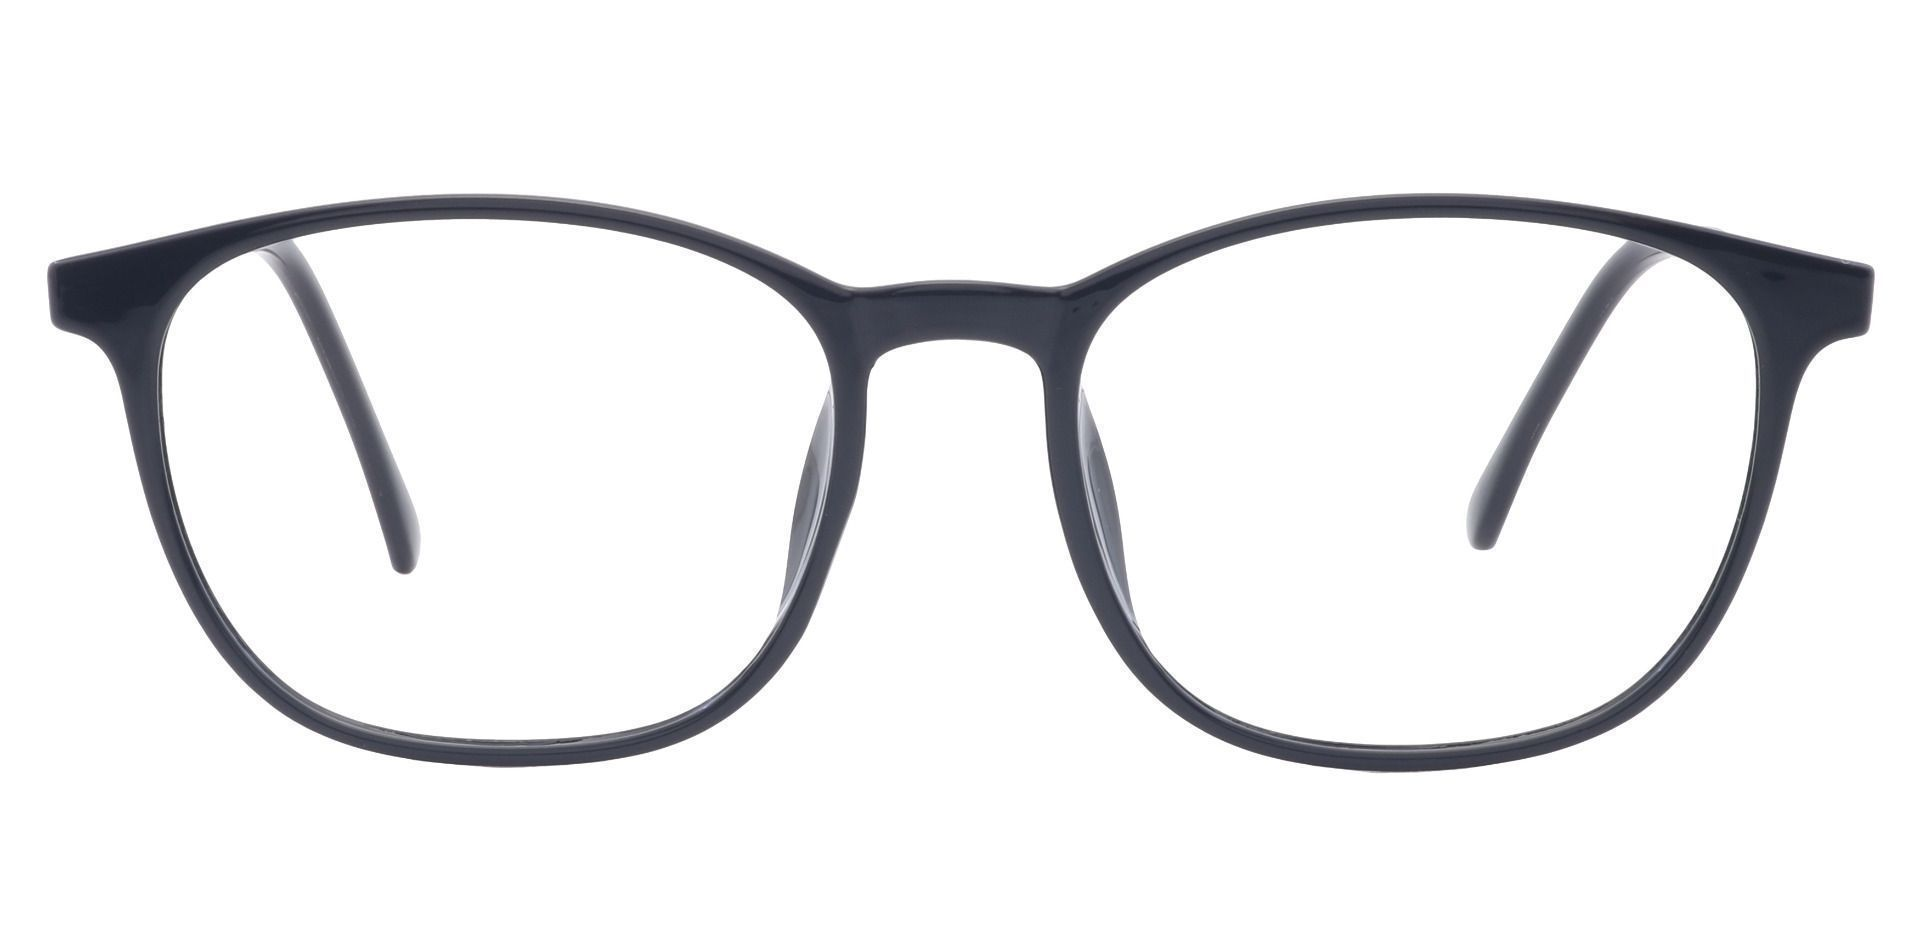 Preston Oval Prescription Glasses - Black